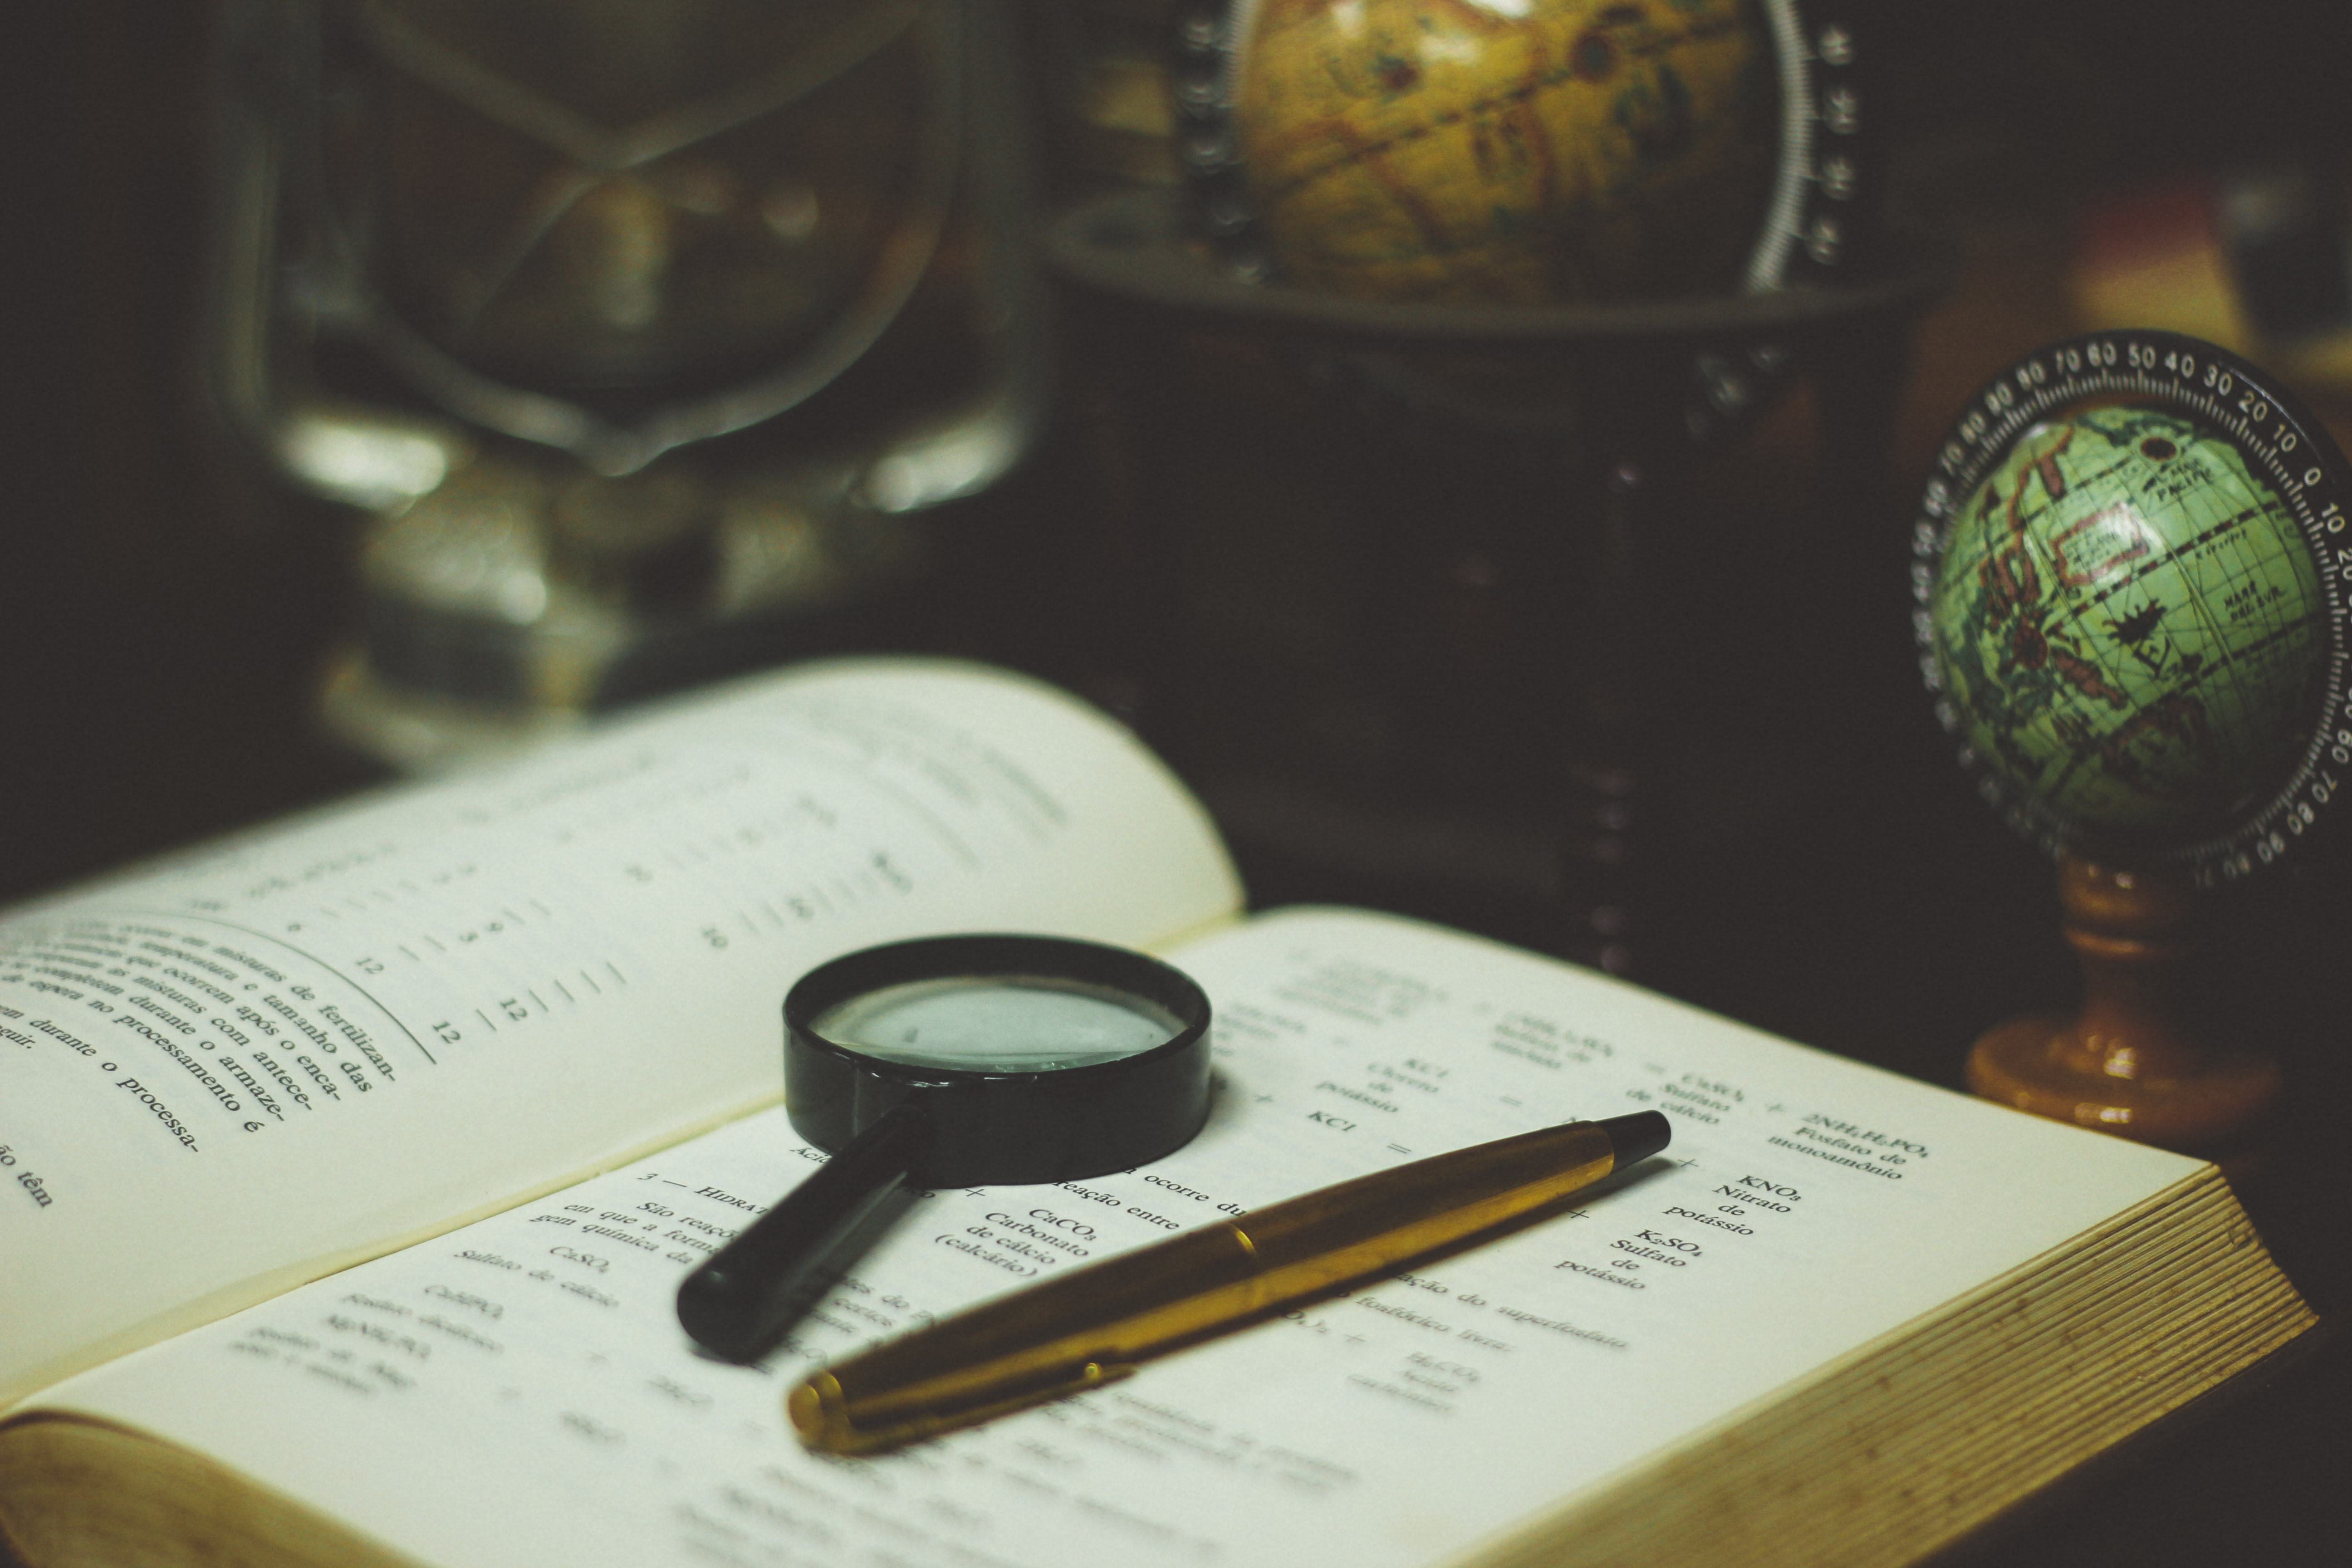 A book with a magnifying glass on top of it, next to a pen, and globes on a desk in Cianorte